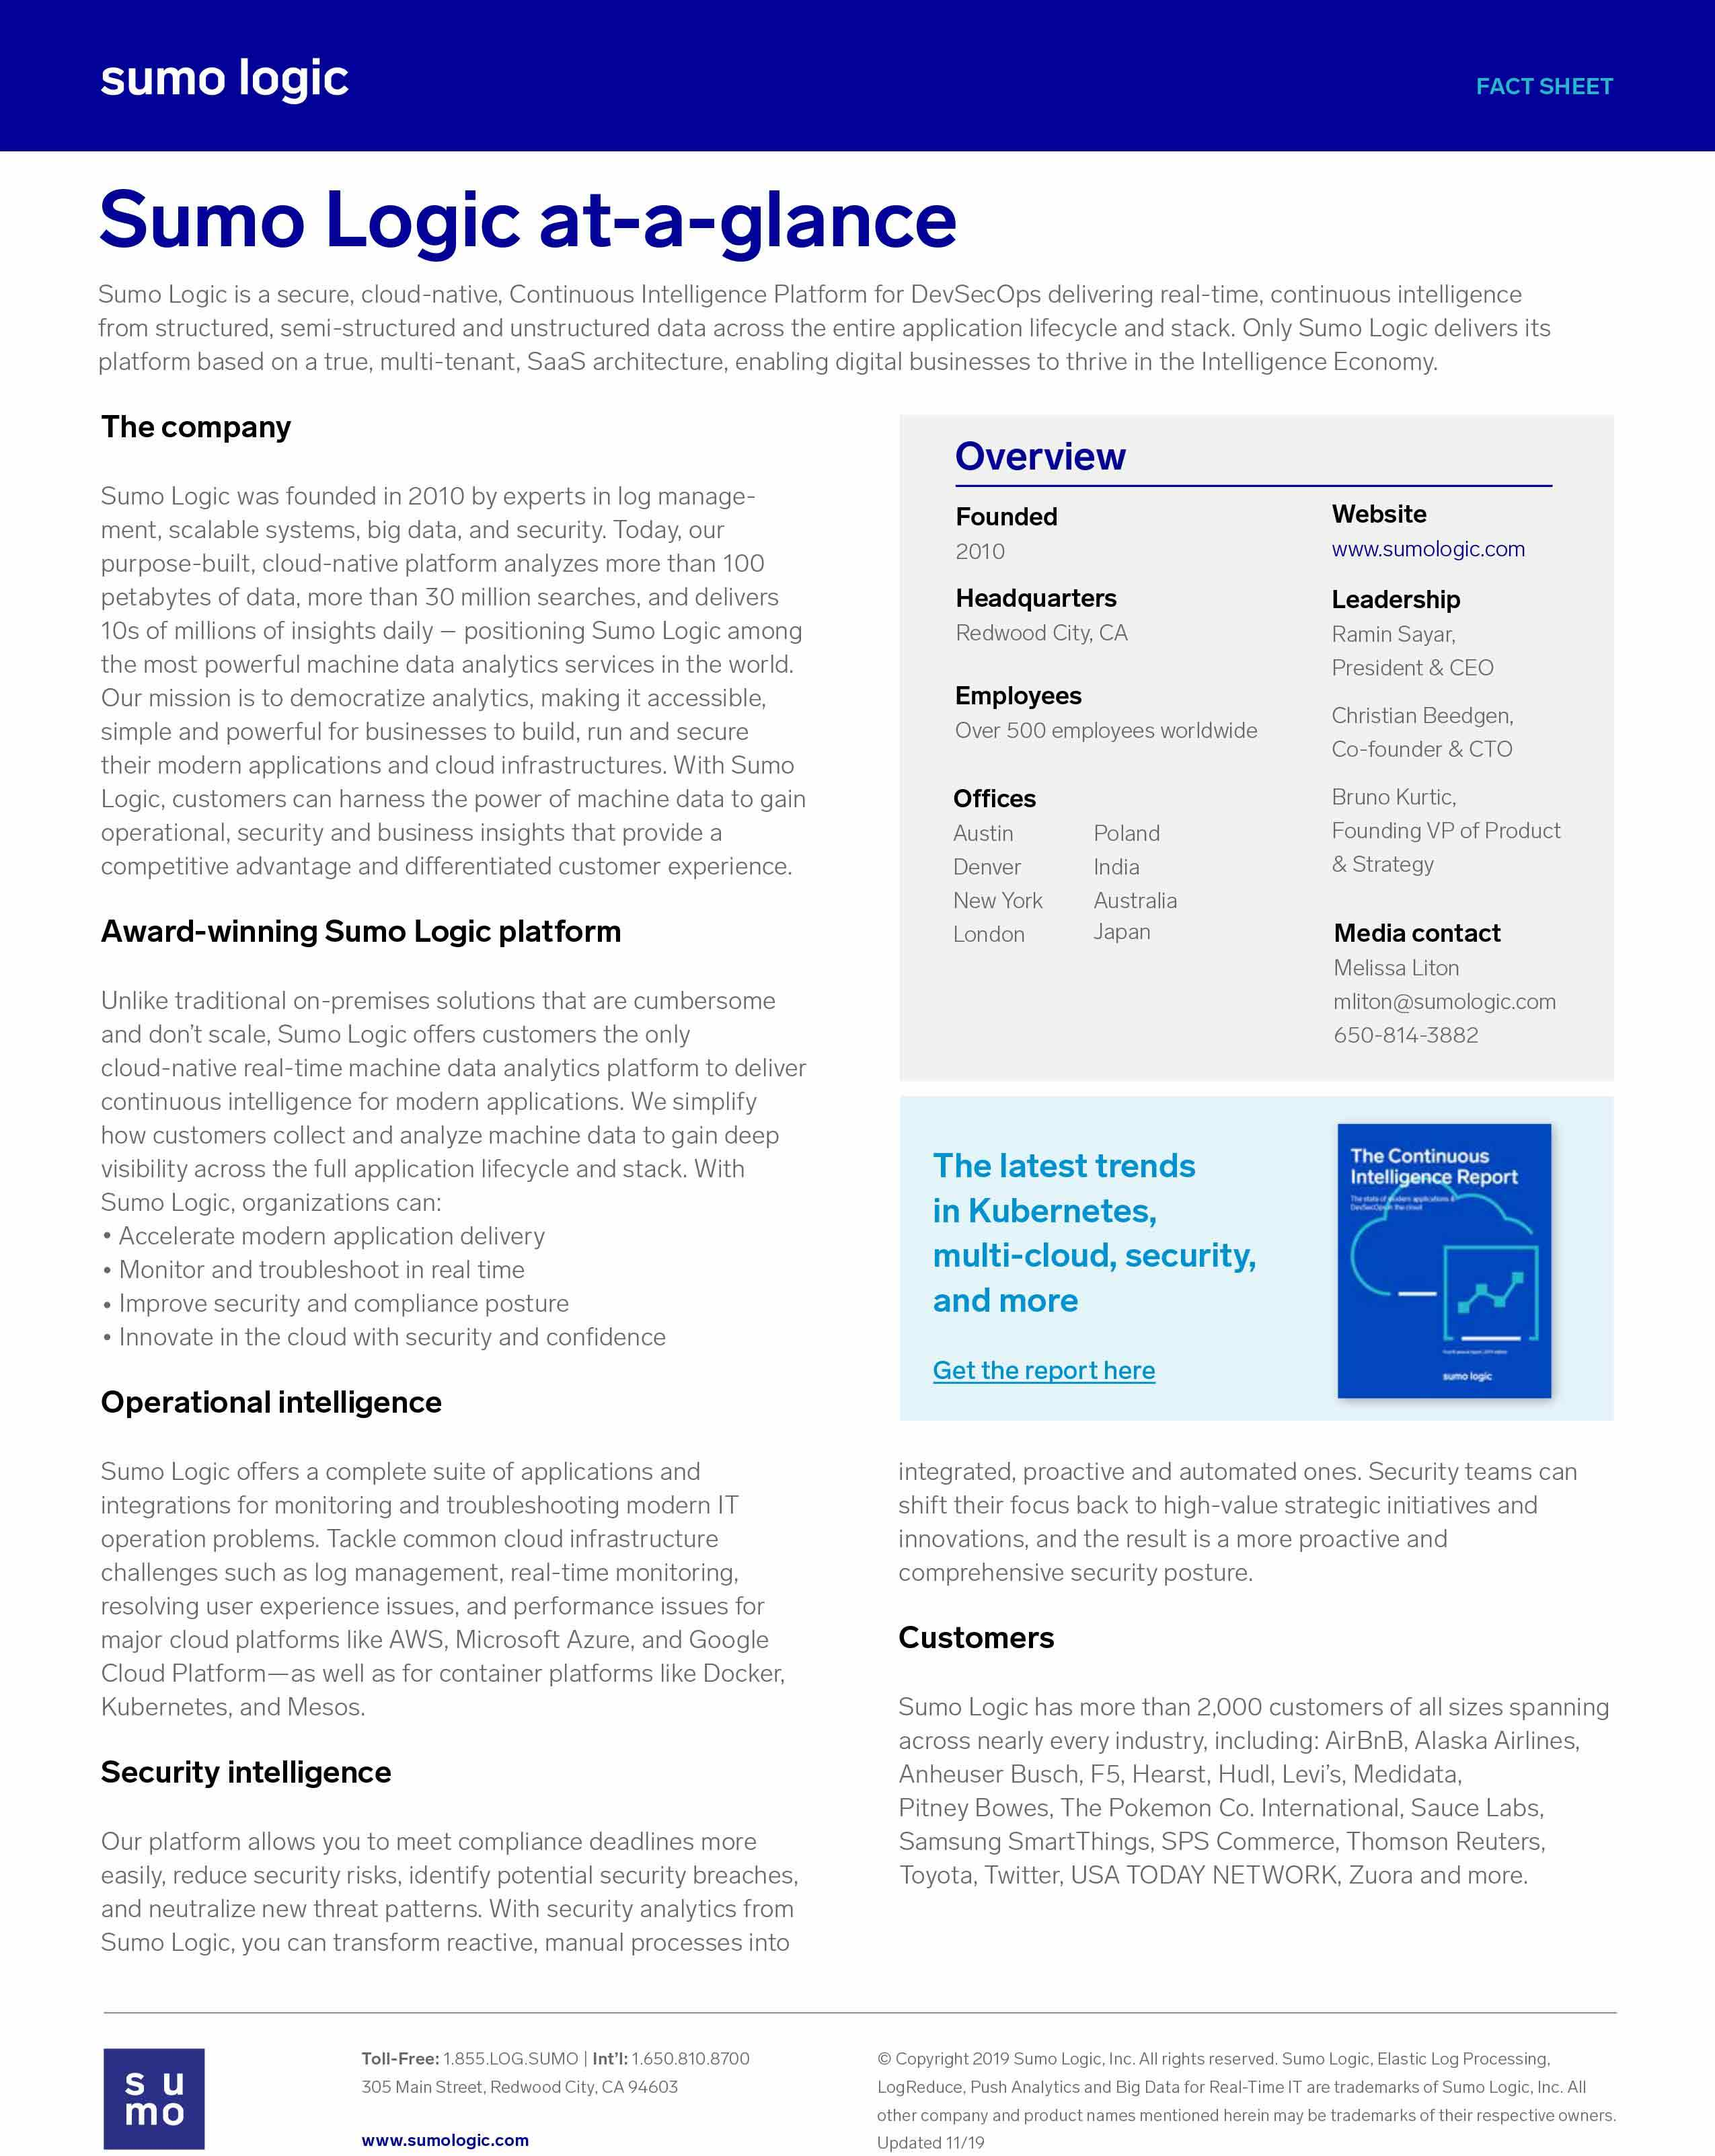 Sumo Logic At-a-Glance